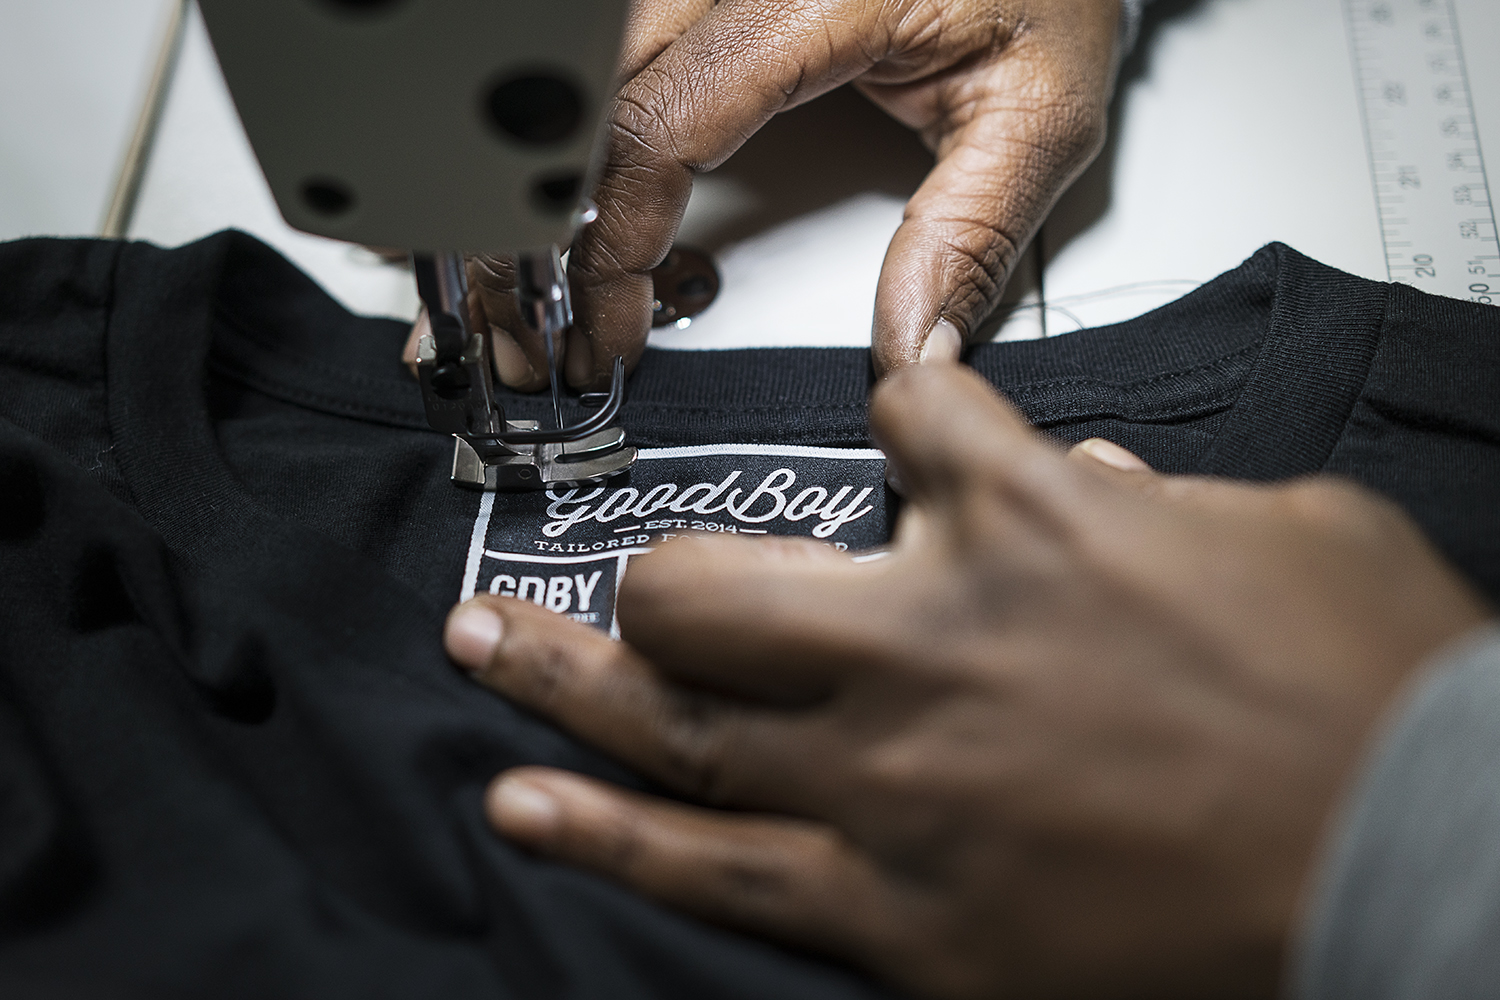 GoodBoy Clothing textile expert Tameka Davis, 37, of Flint, stitches tags into new shirts that are headed to the showroom at the new GoodBoy Clothing storefront in downtown Flint.